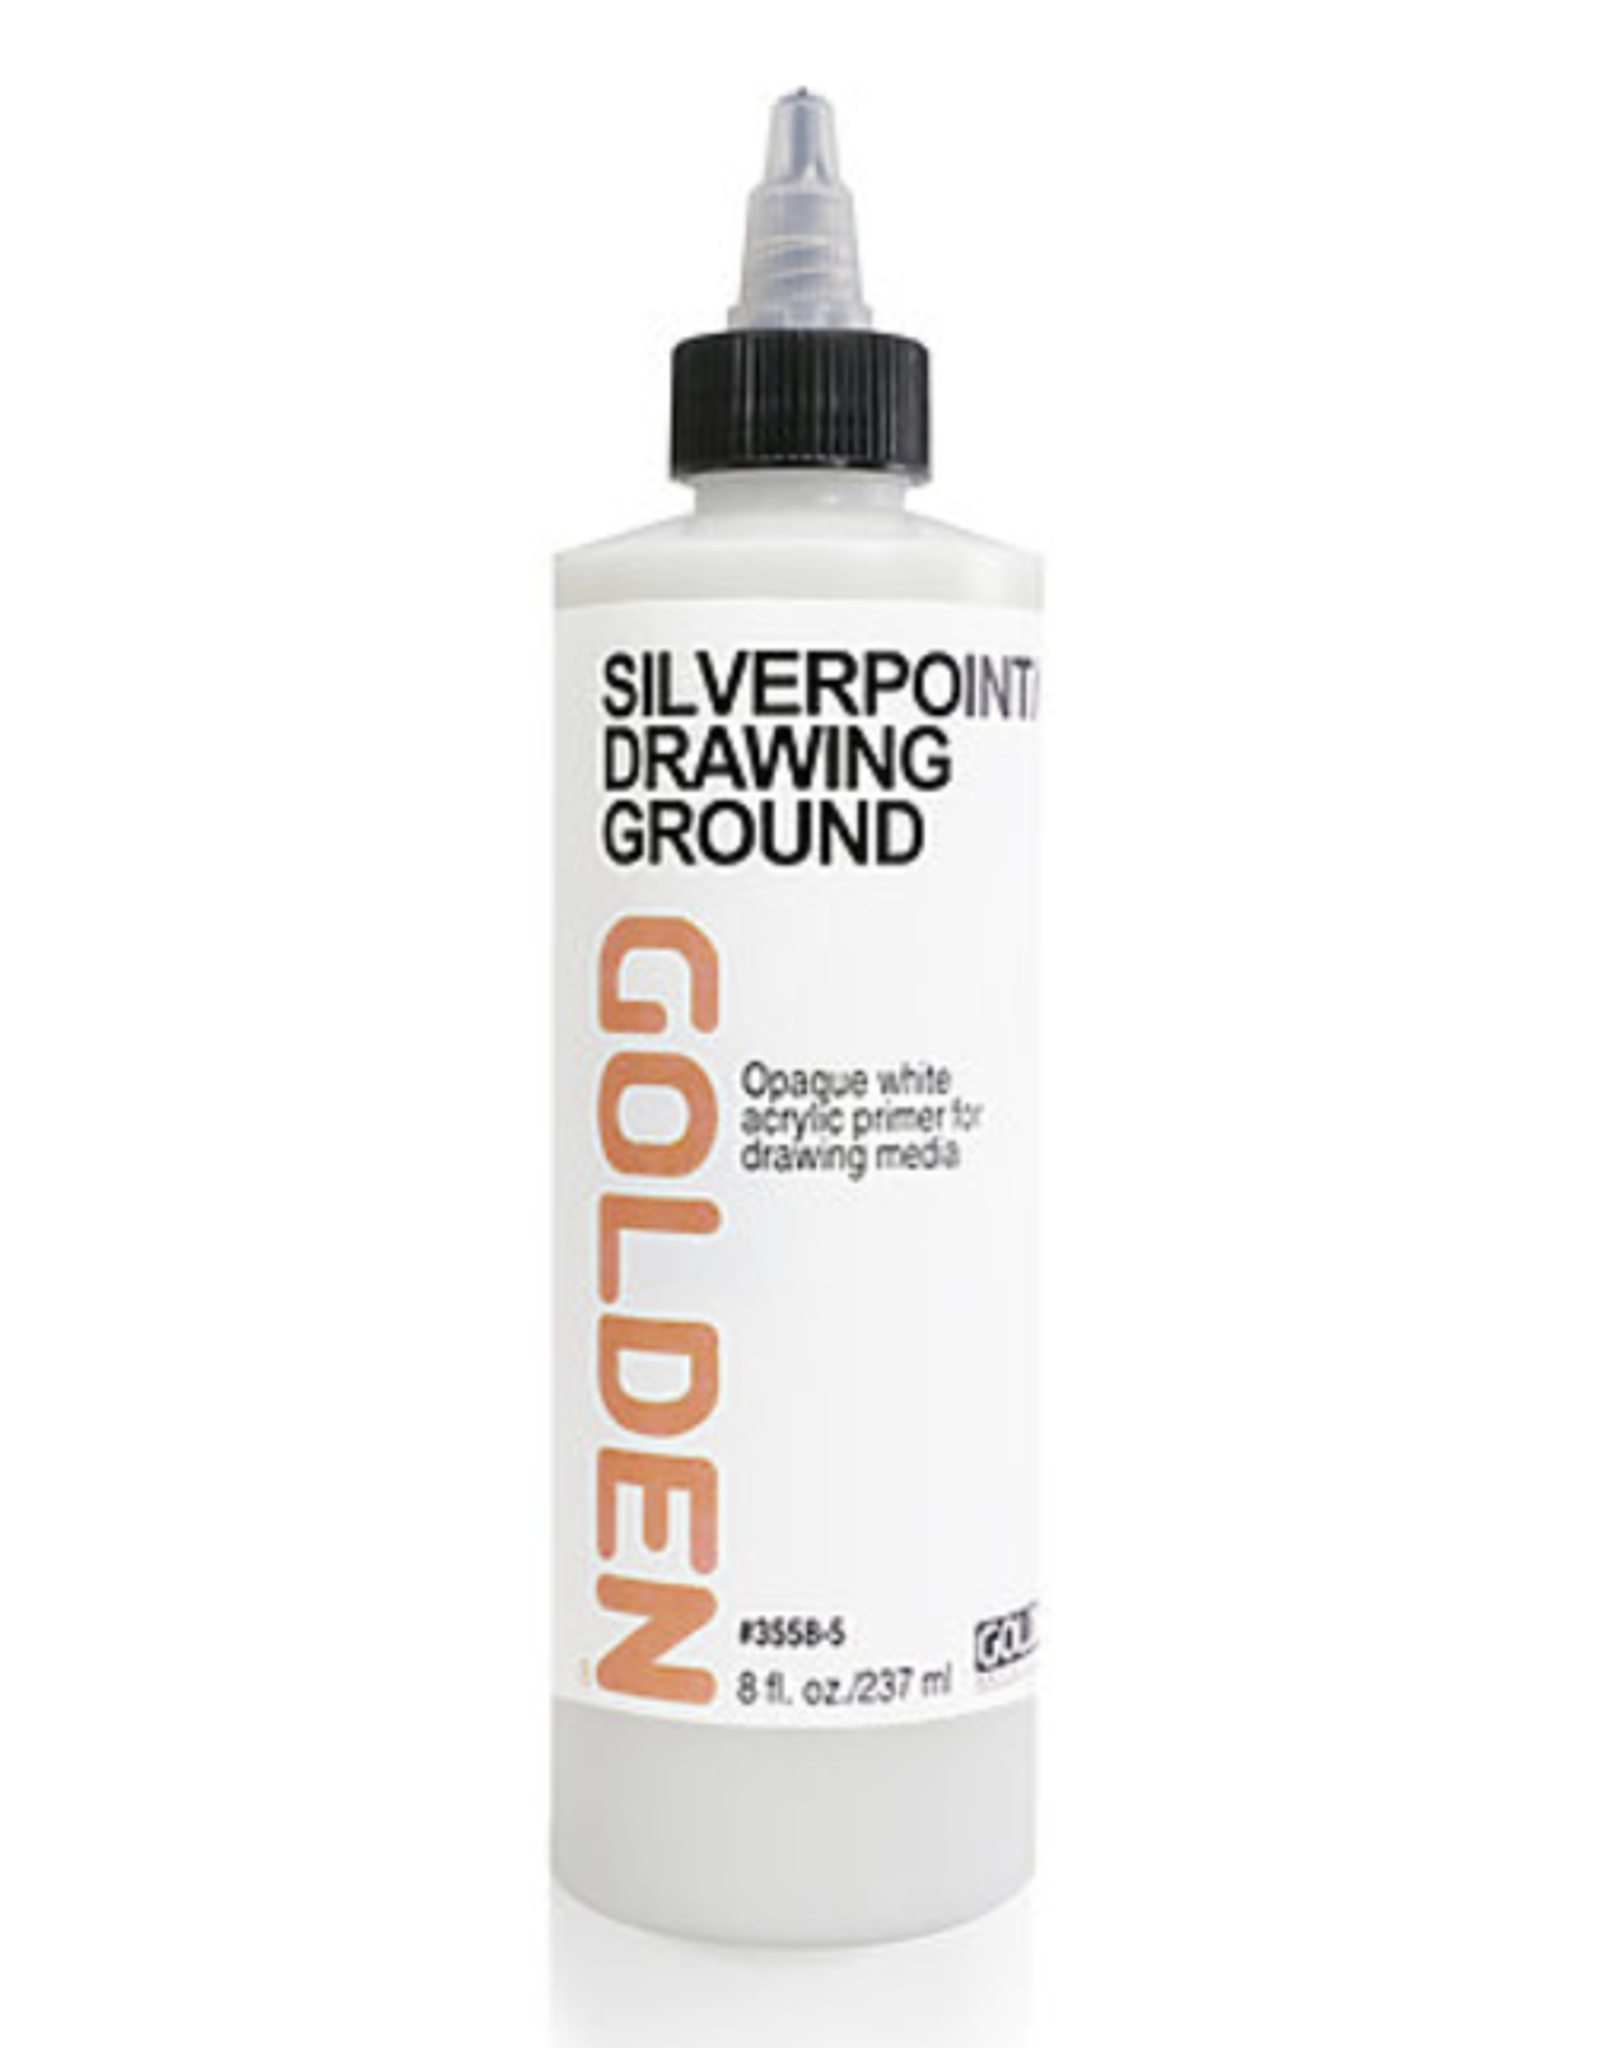 Silverpoint Drawing Ground 8oz